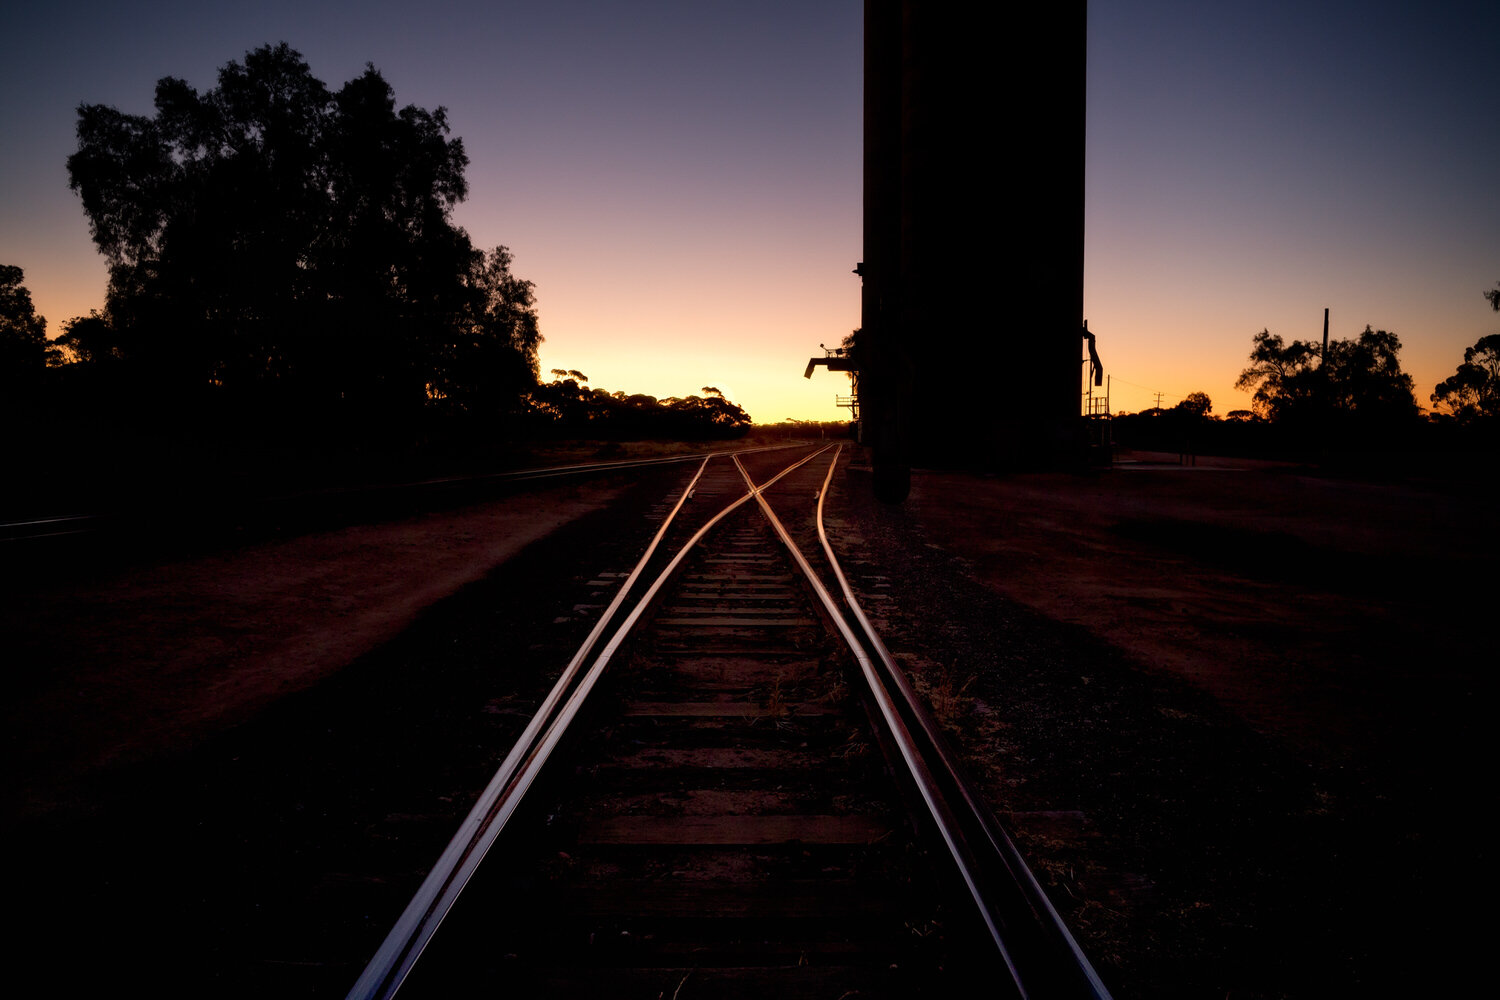 Linear perspective leading to a vanishing point on railway tracks at Murrayville.